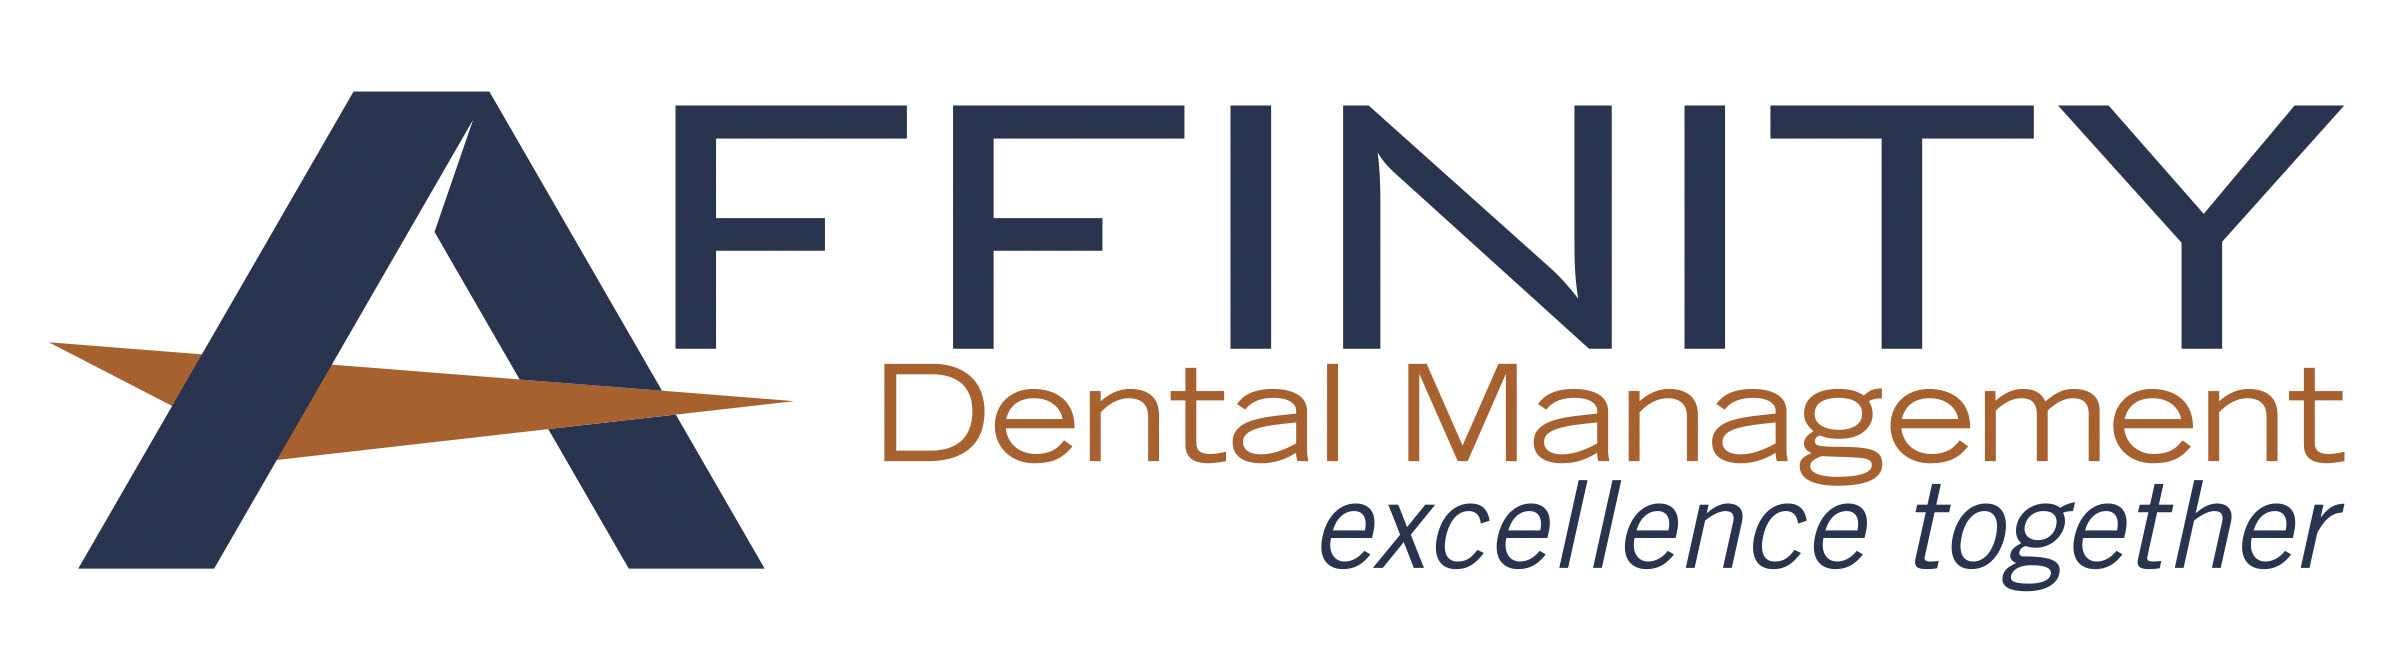 Affinity Dental Management